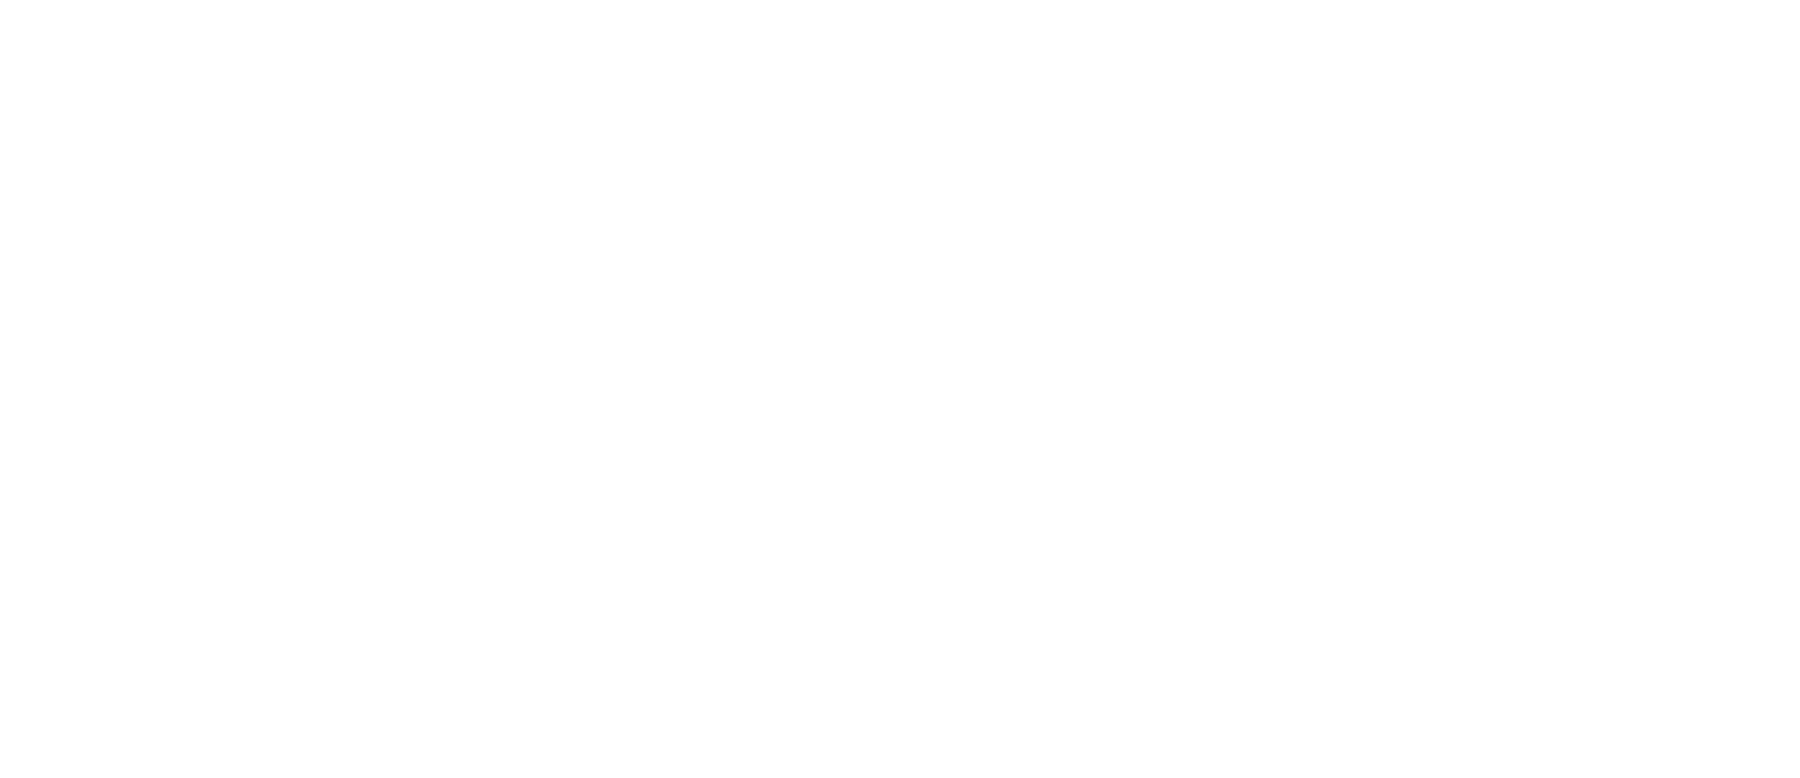 White Haddow Group logo with the text 'bringing properties to life' tagline